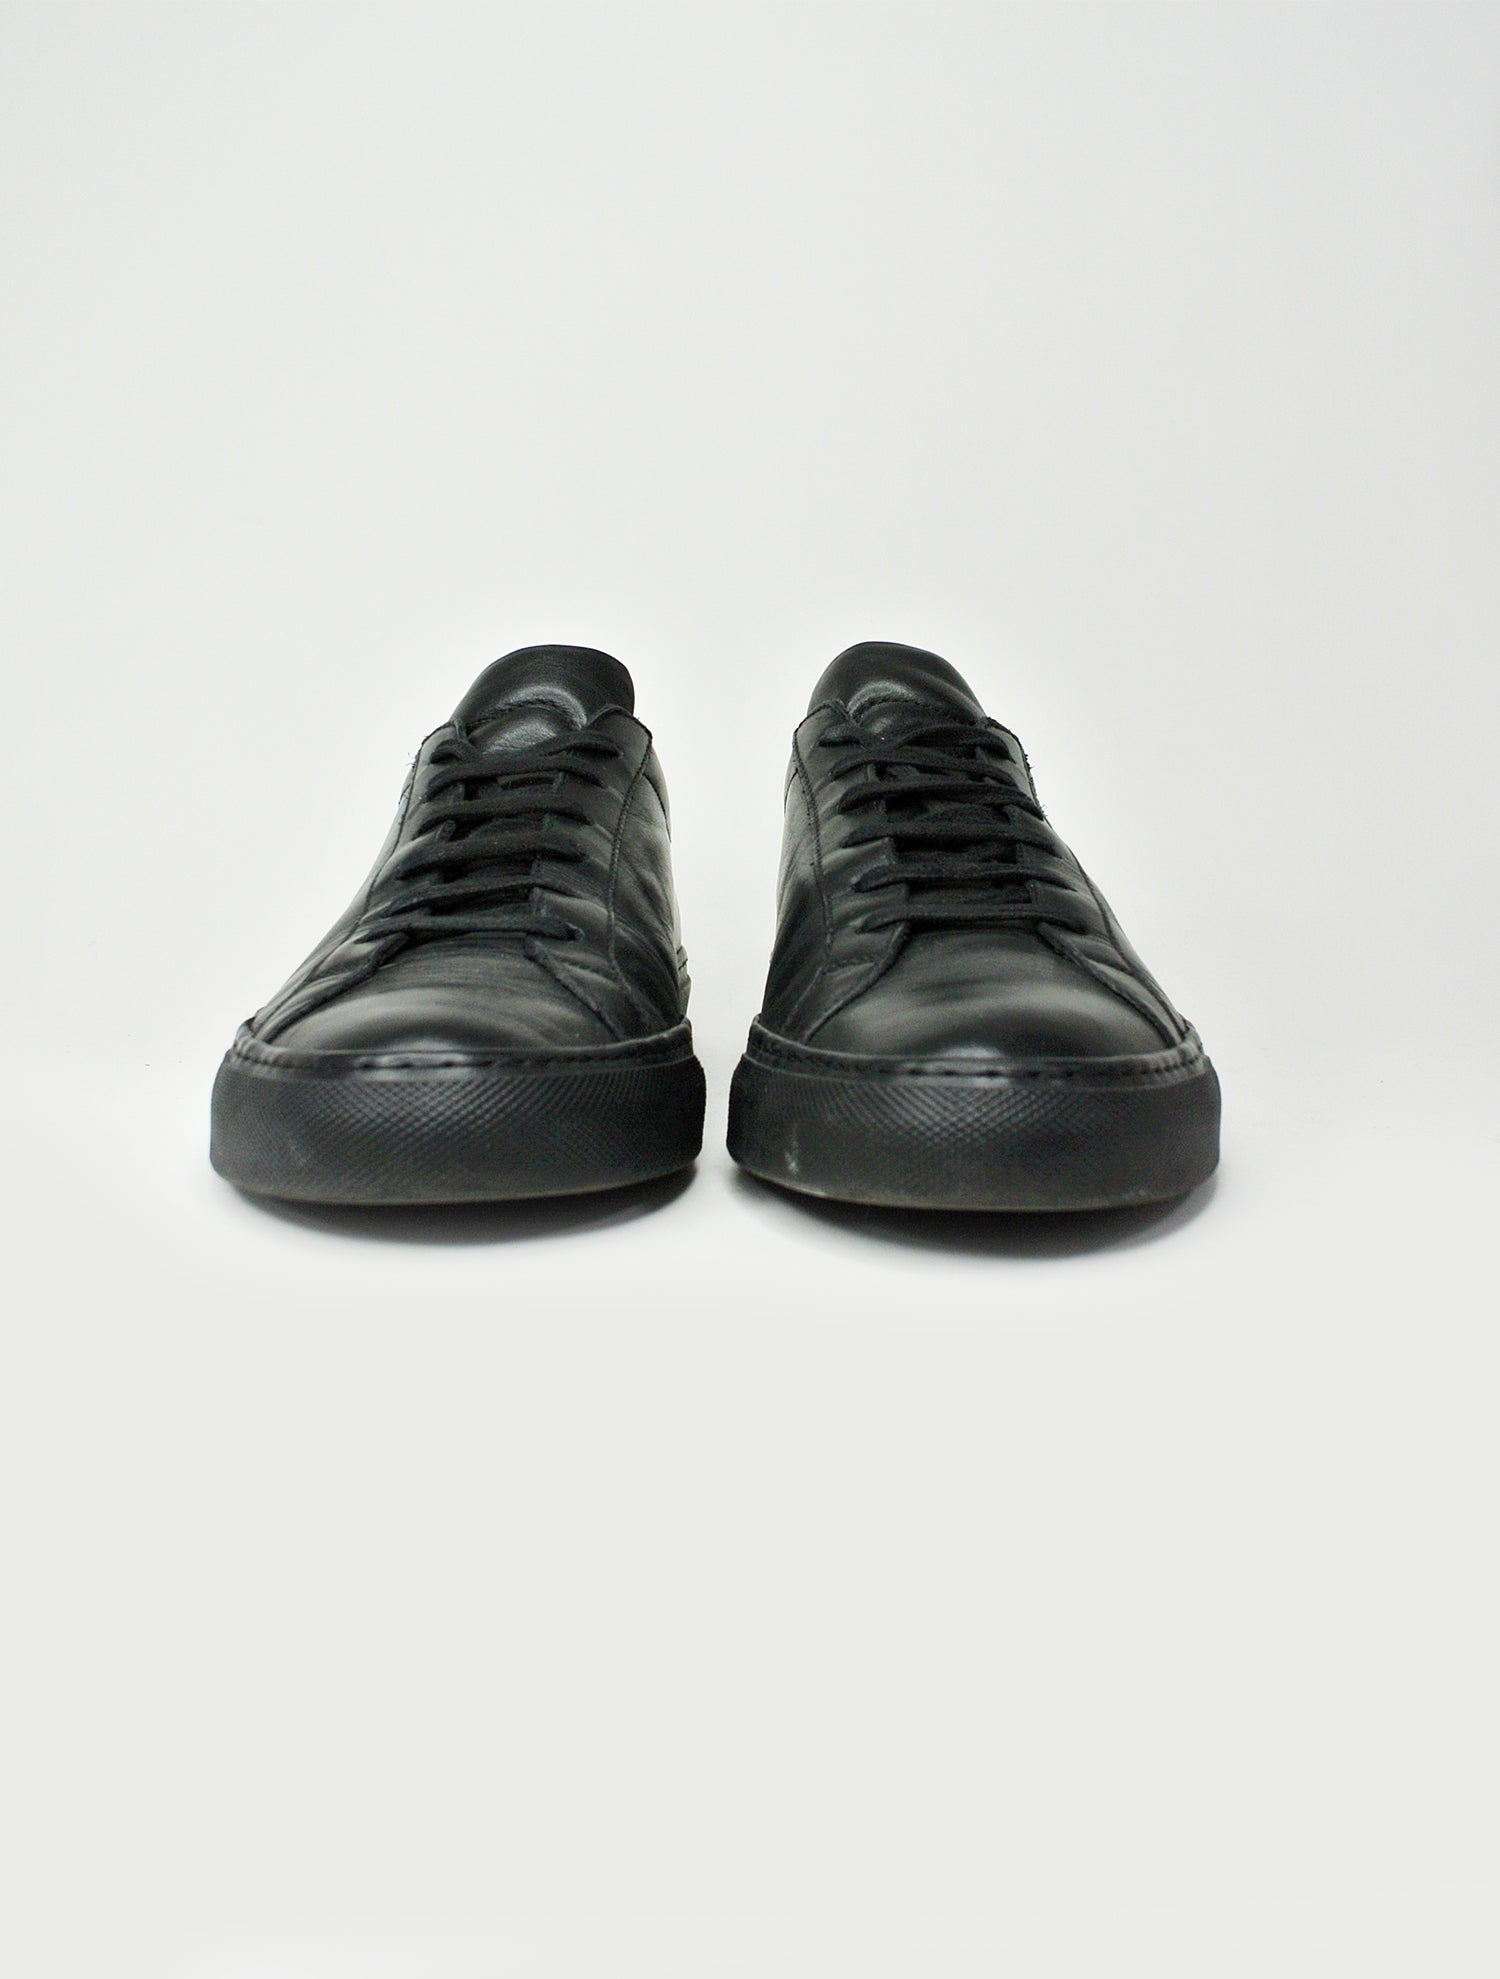 Common Projects Black Leather Low-Top Sneaker Sz 41